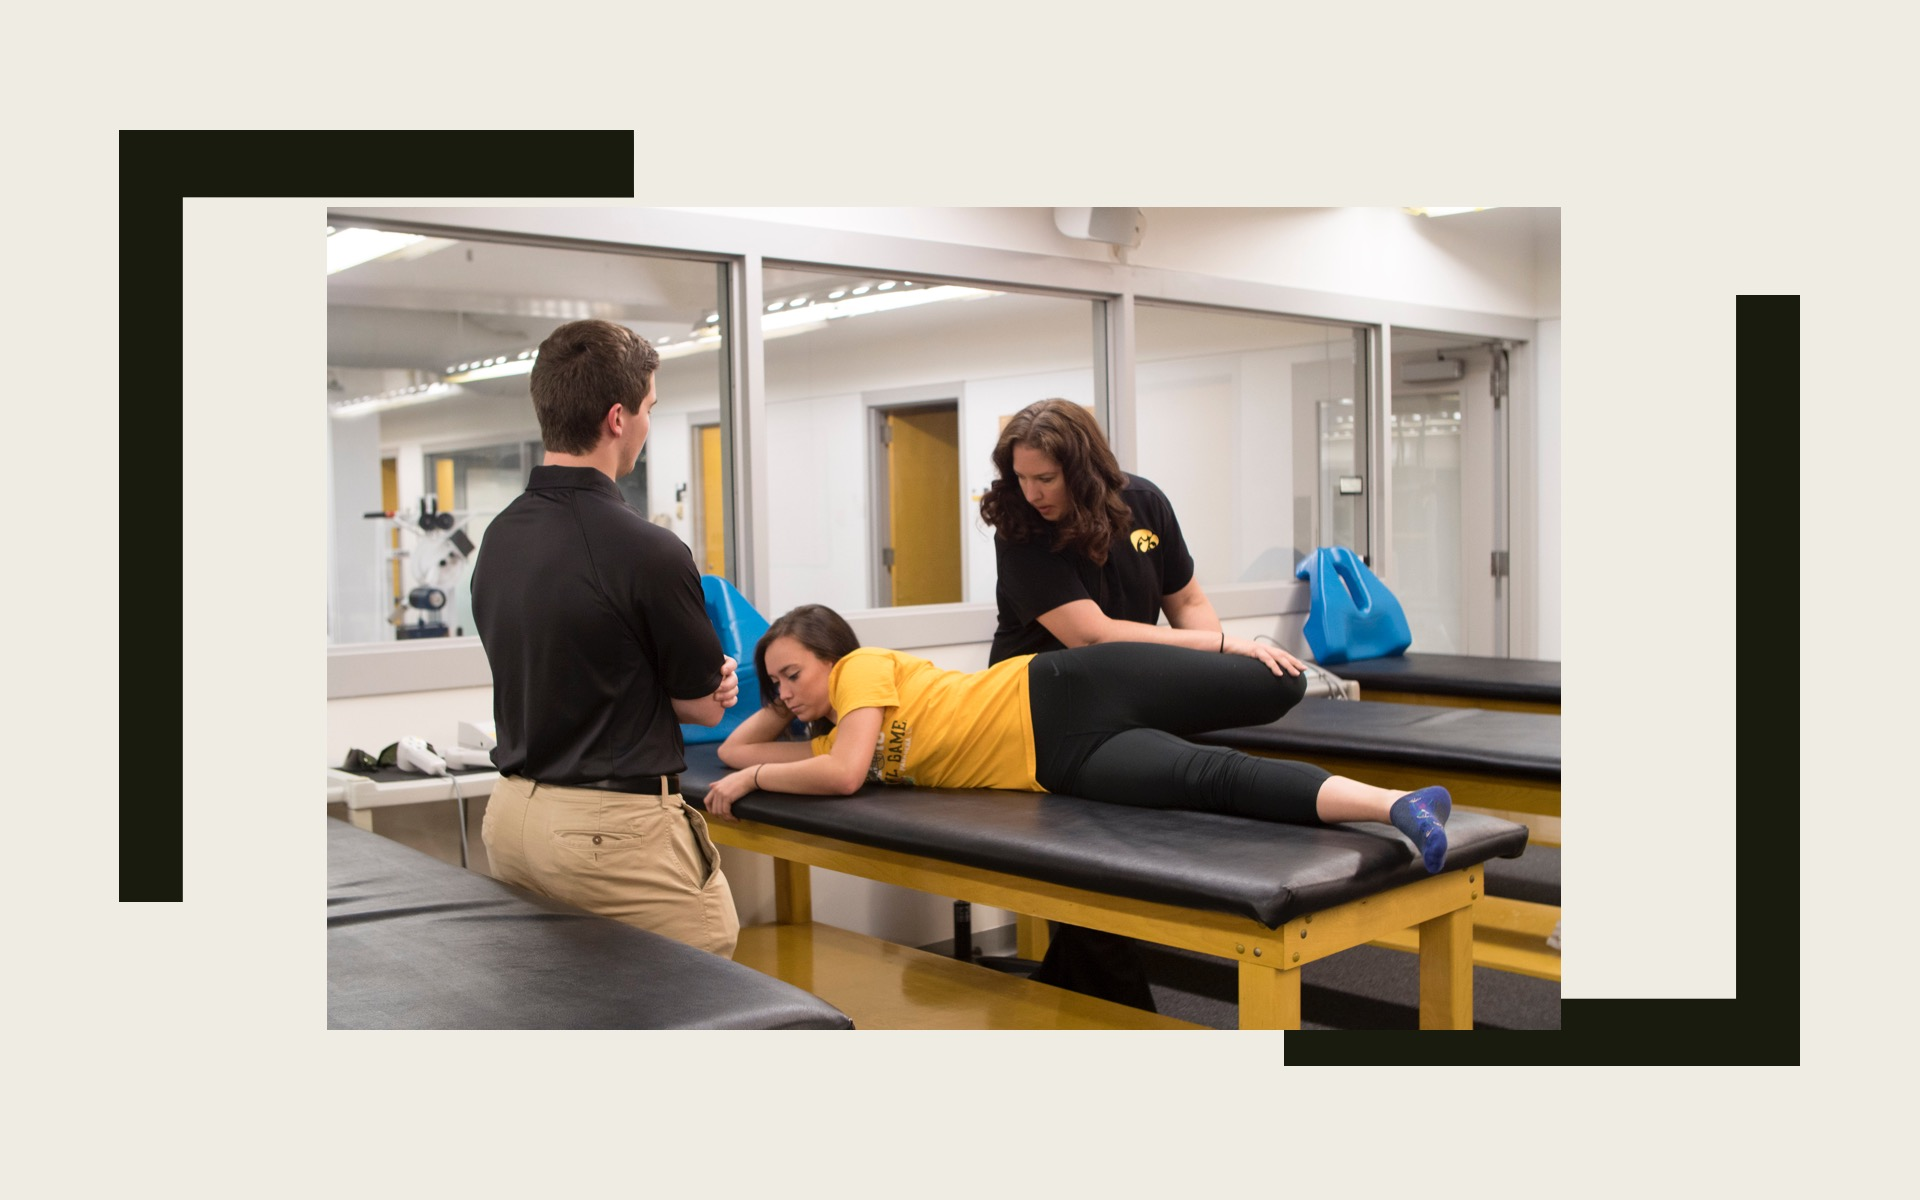 Faculty demonstrating hip flexor stretching to a watching student